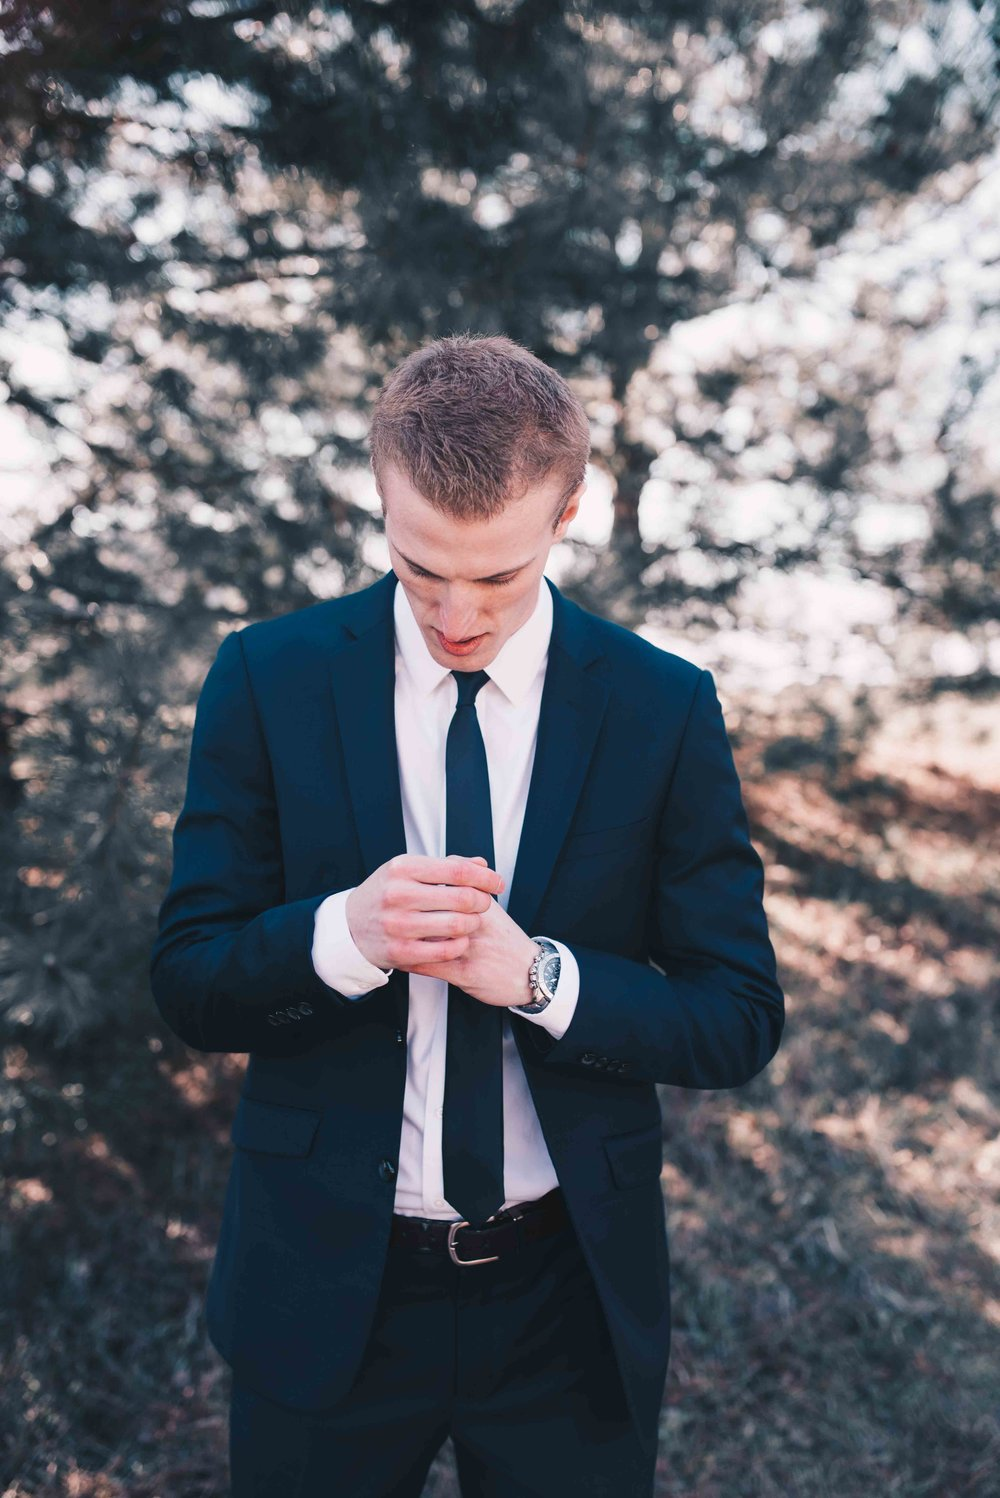 Groom Photos, Groom Wedding Photos, Groom Attire